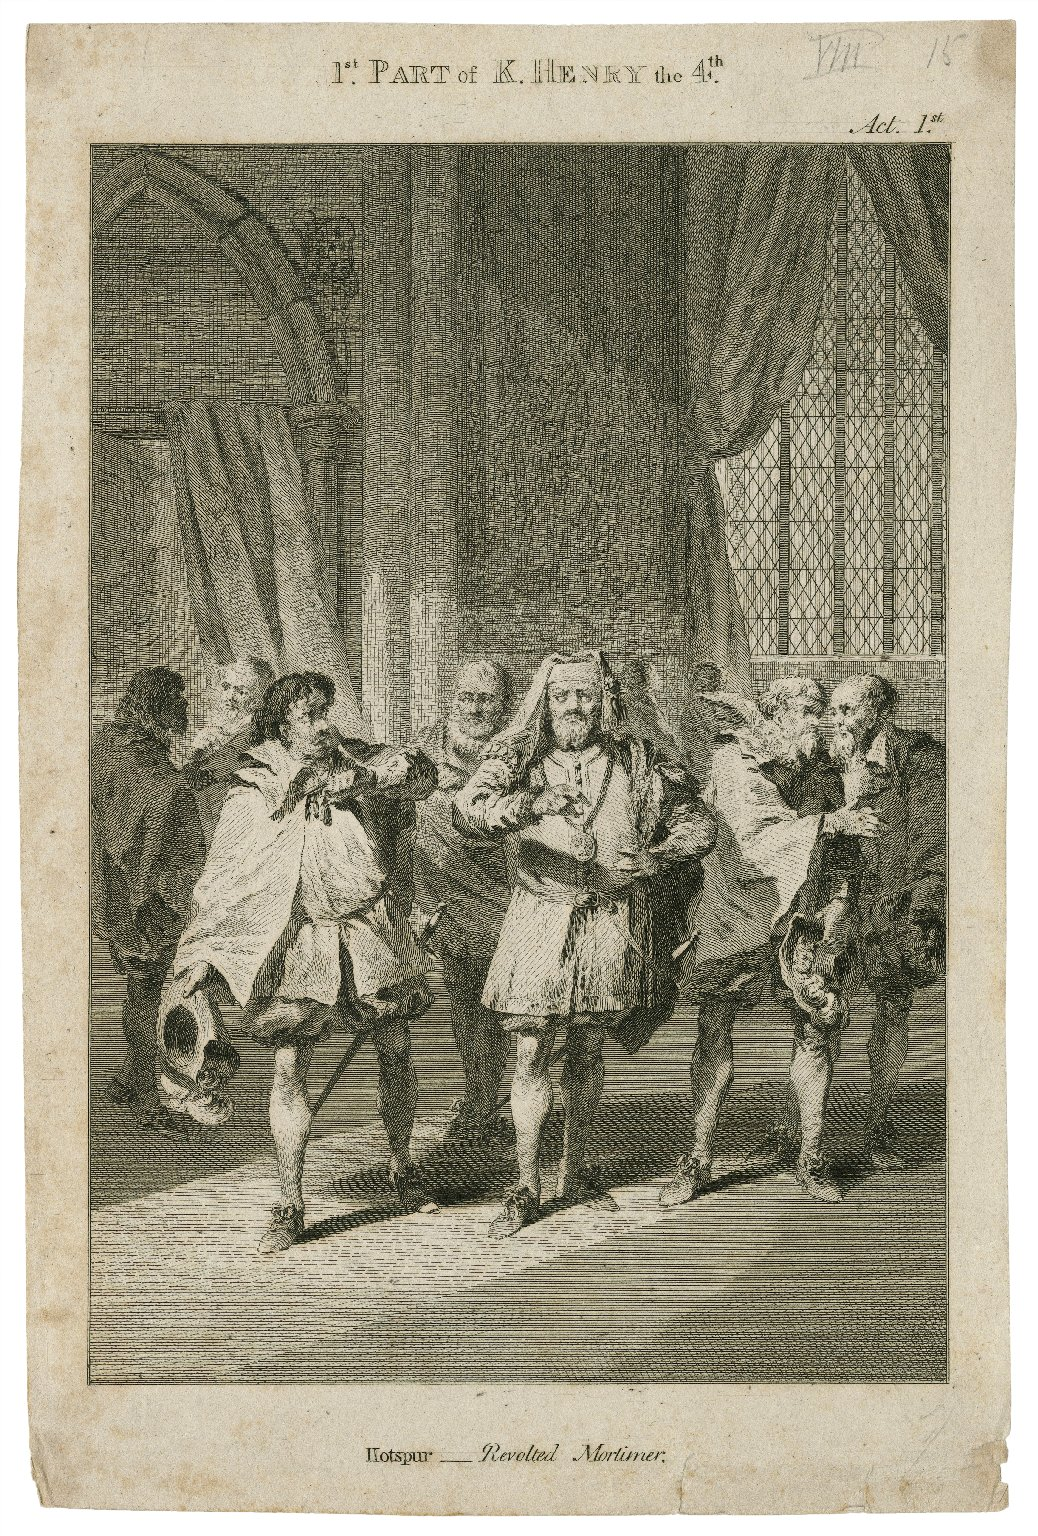 1st part of K. Henry the 4th, act 1st [sc.3] Hotspur: revolted Mortimer [graphic].